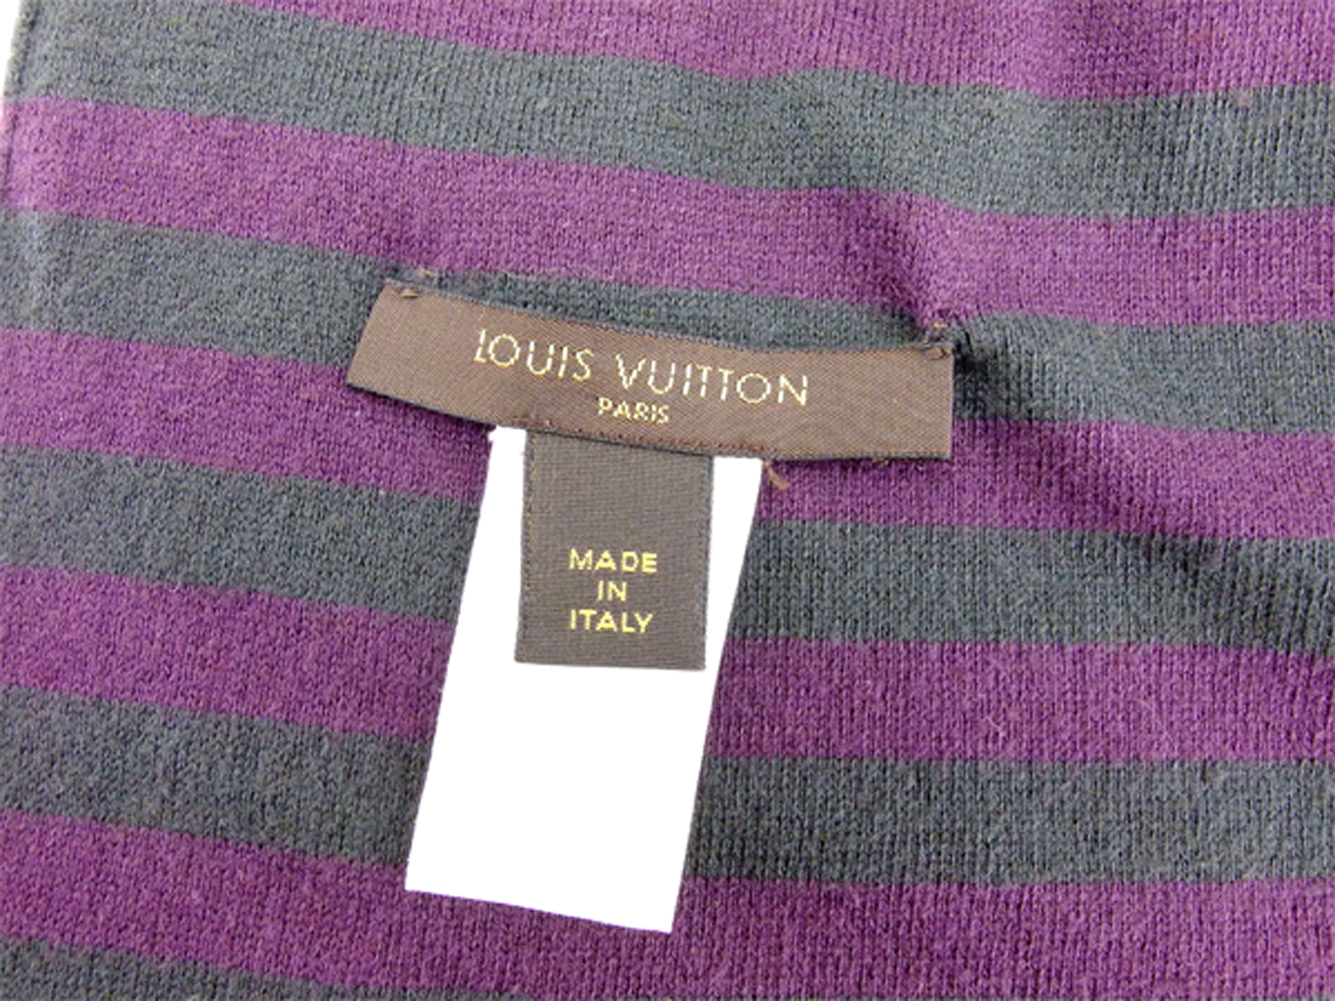 a3ae1b67d77 15% of Louis Vuitton Louis Vuitton scarf LV mark Lady s men horizontal  stripe purple gray gray cotton 85% cashmere beautiful article sale S897